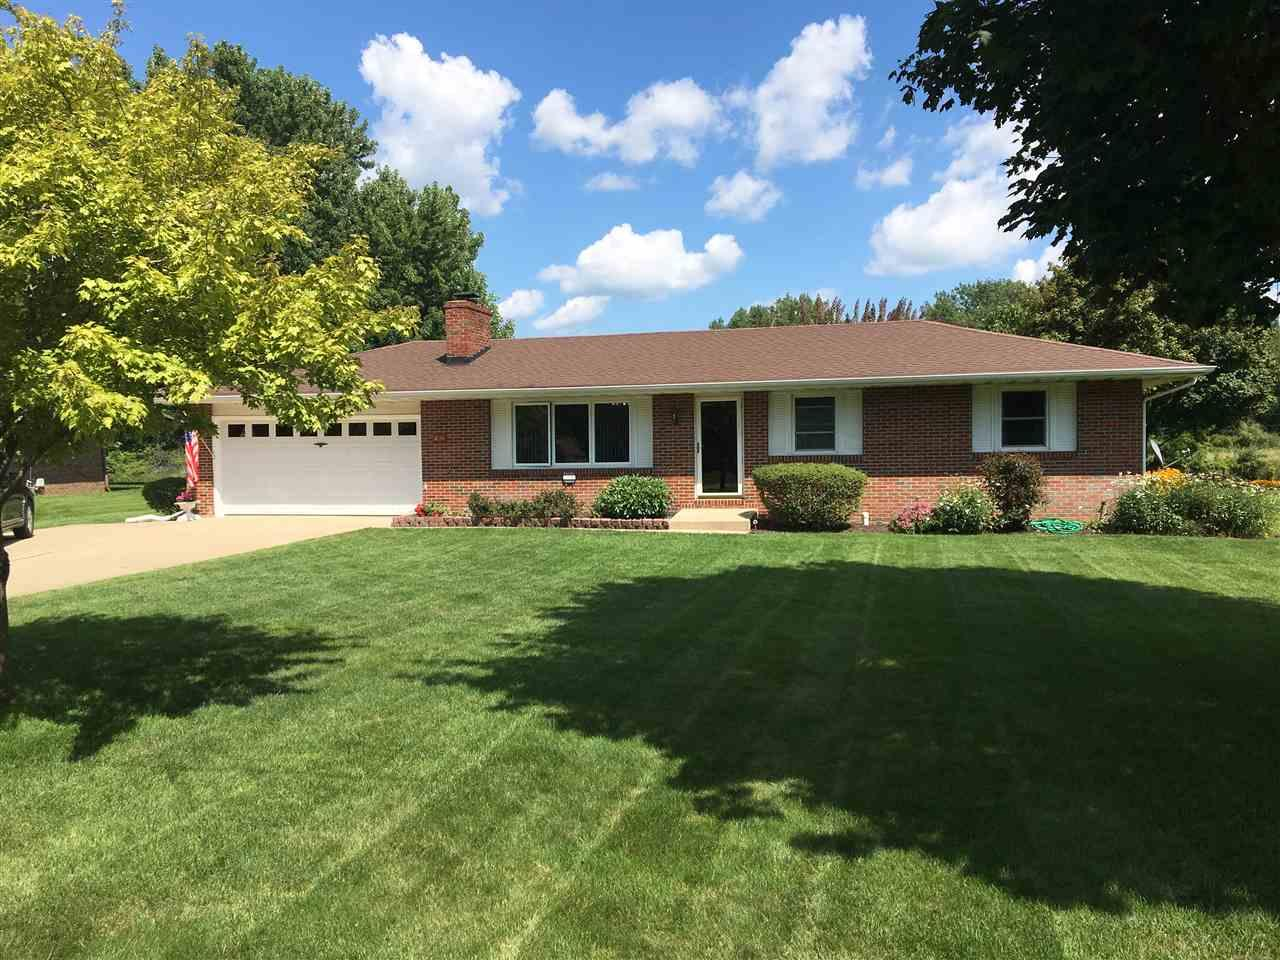 2144 Bluewater Dr, Warsaw, IN 46580